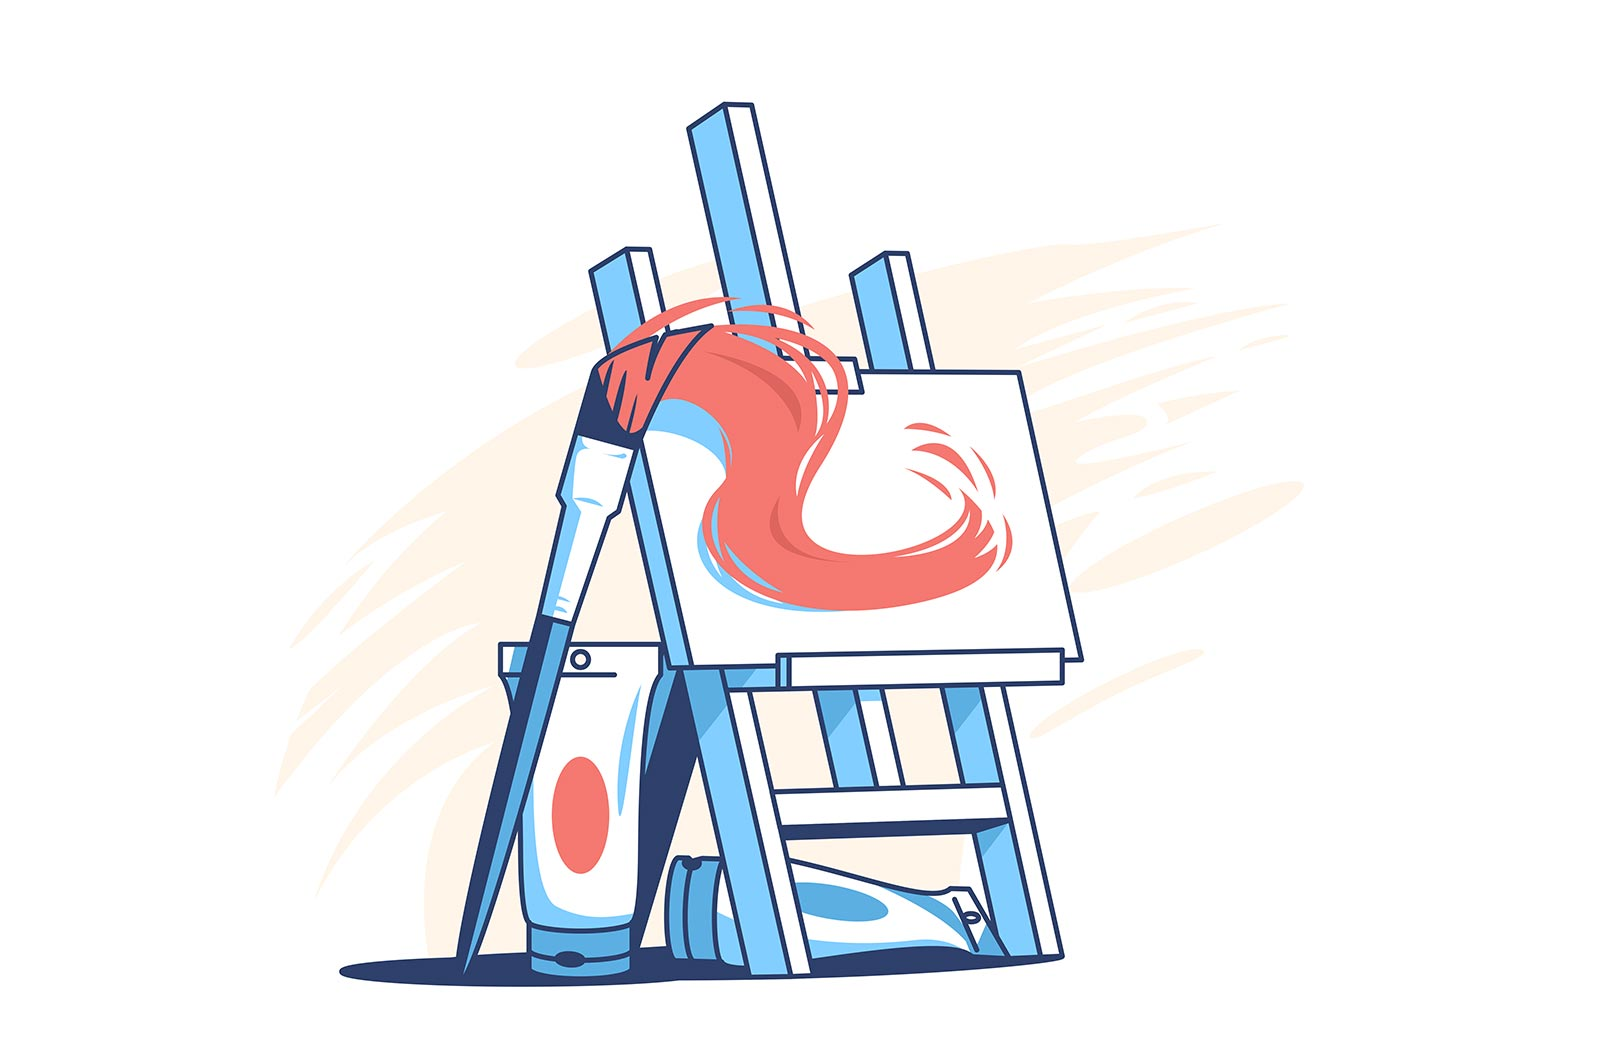 Easel for painting vector illustration. Tubes with paintings flat style. Natural paintbrush with red oil paint. Art and creativity concept.